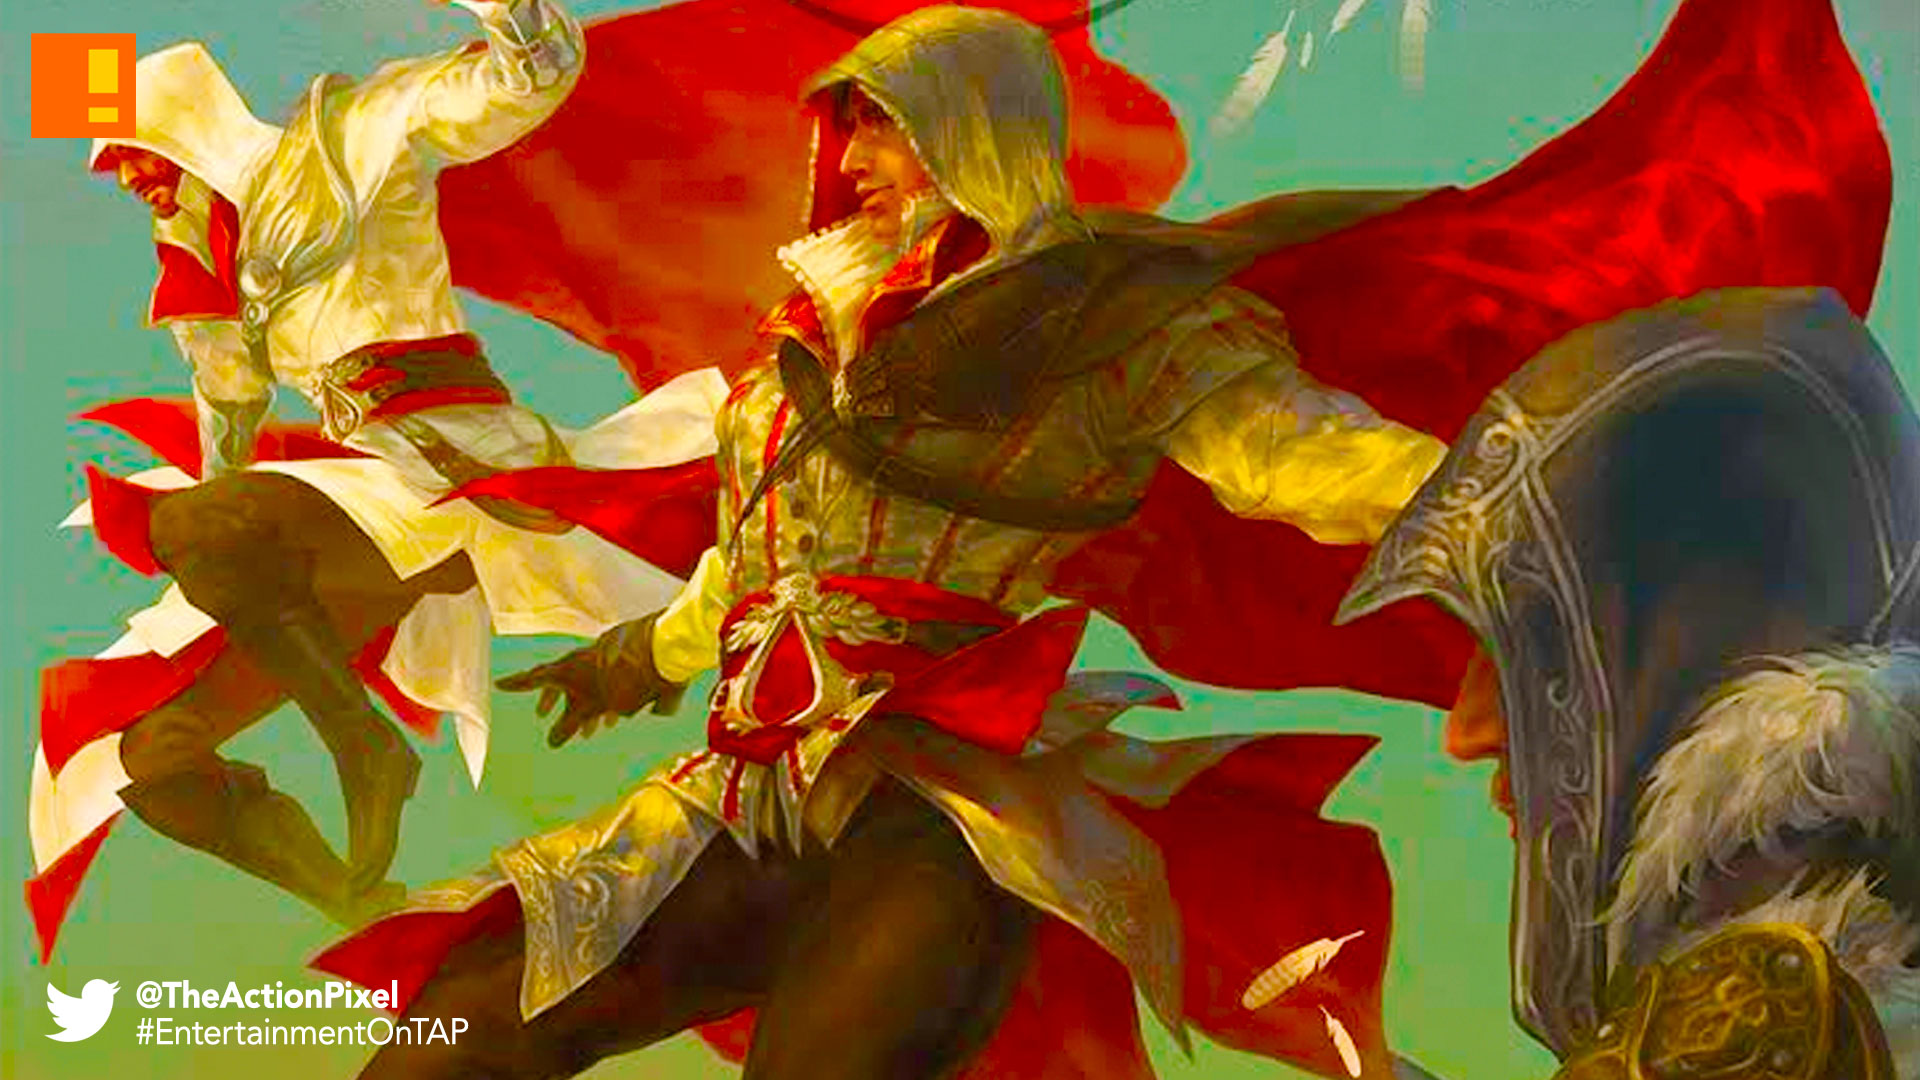 assassin's creed, assassin's creed reflections, reflections, titan comics, ubisoft, entertainment on tap, the action pixel